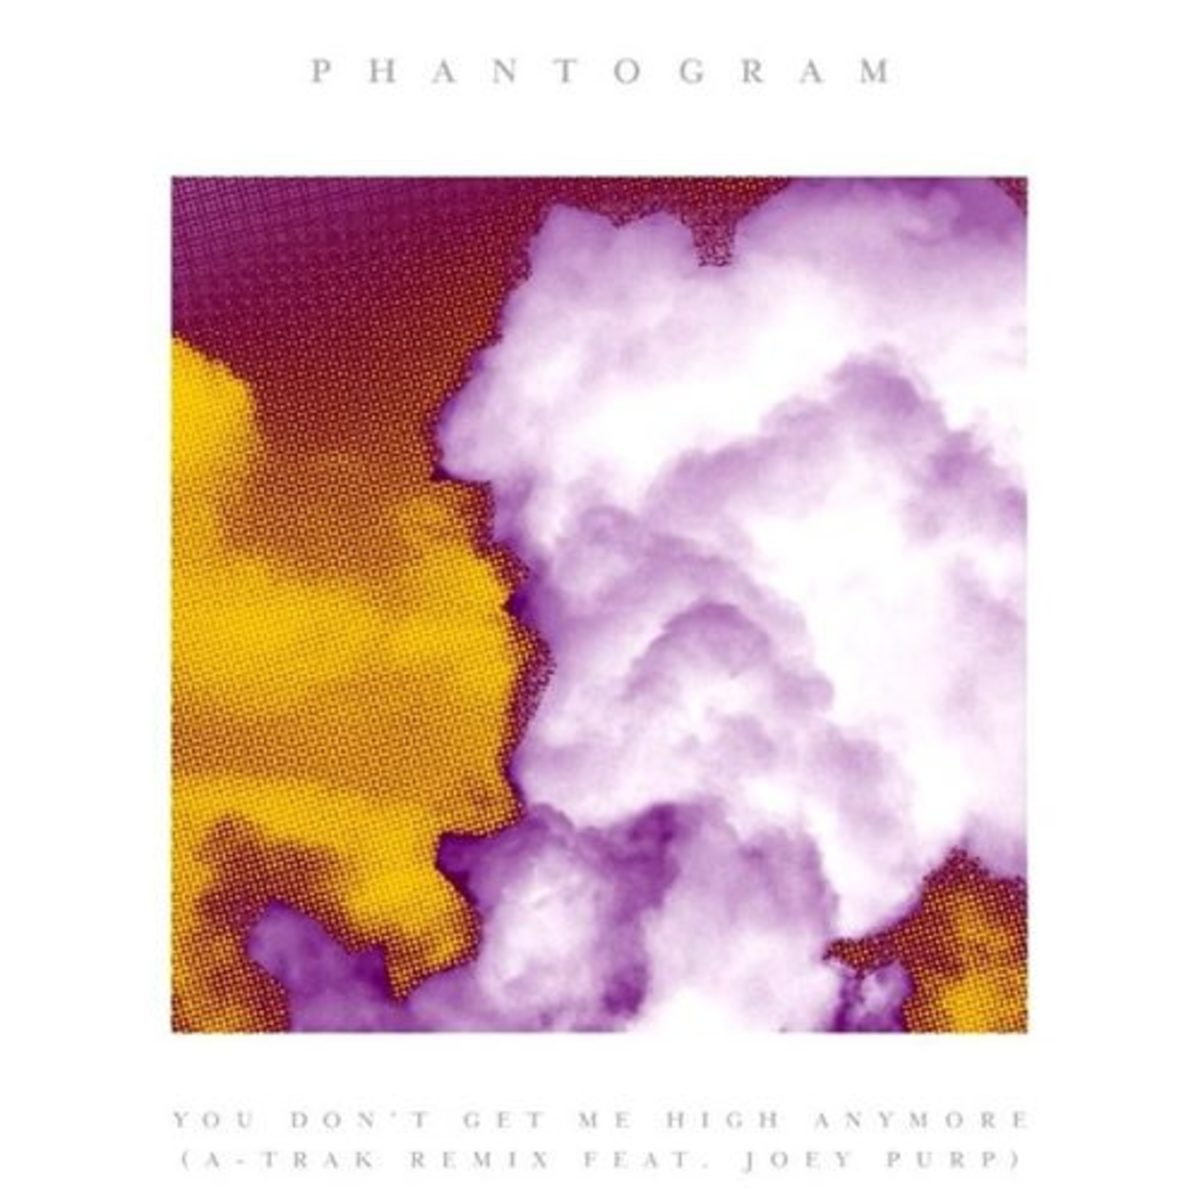 phantogram-you-dont-get-me-high-anymore-a-trak-rmx.jpg